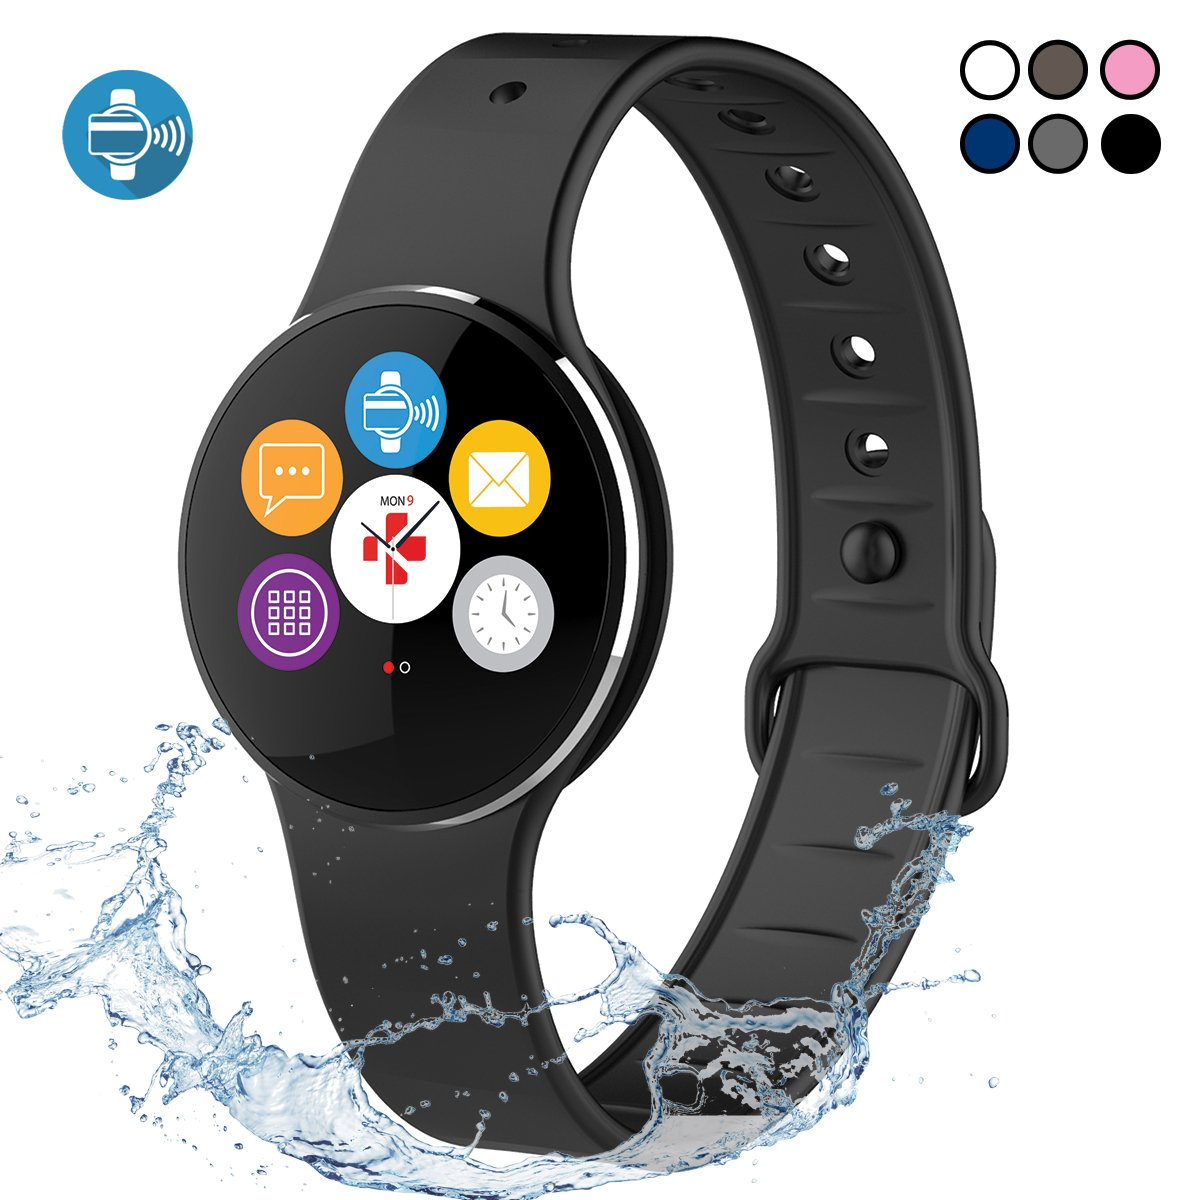 MyKronoz ZeCircle2 - Activity Tracker with Color Touchscreen, Smart Notifications and contactless Payment (Black/Black)